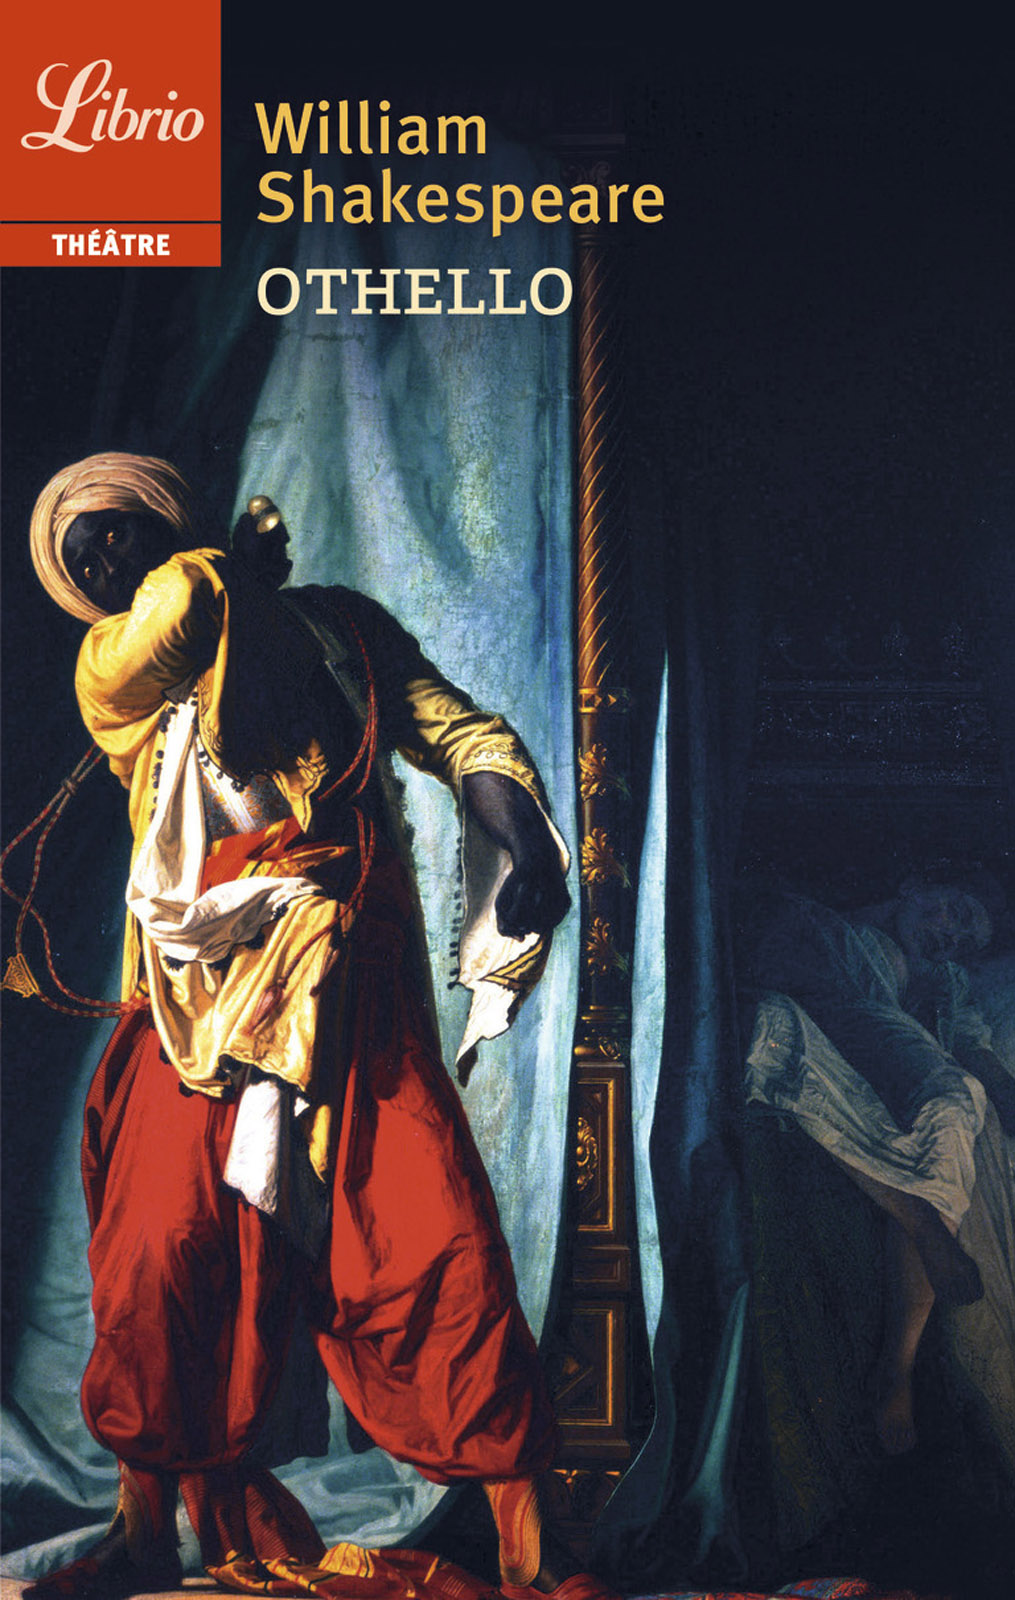 an analysis of the venetian society in othello a play by william shakespeare